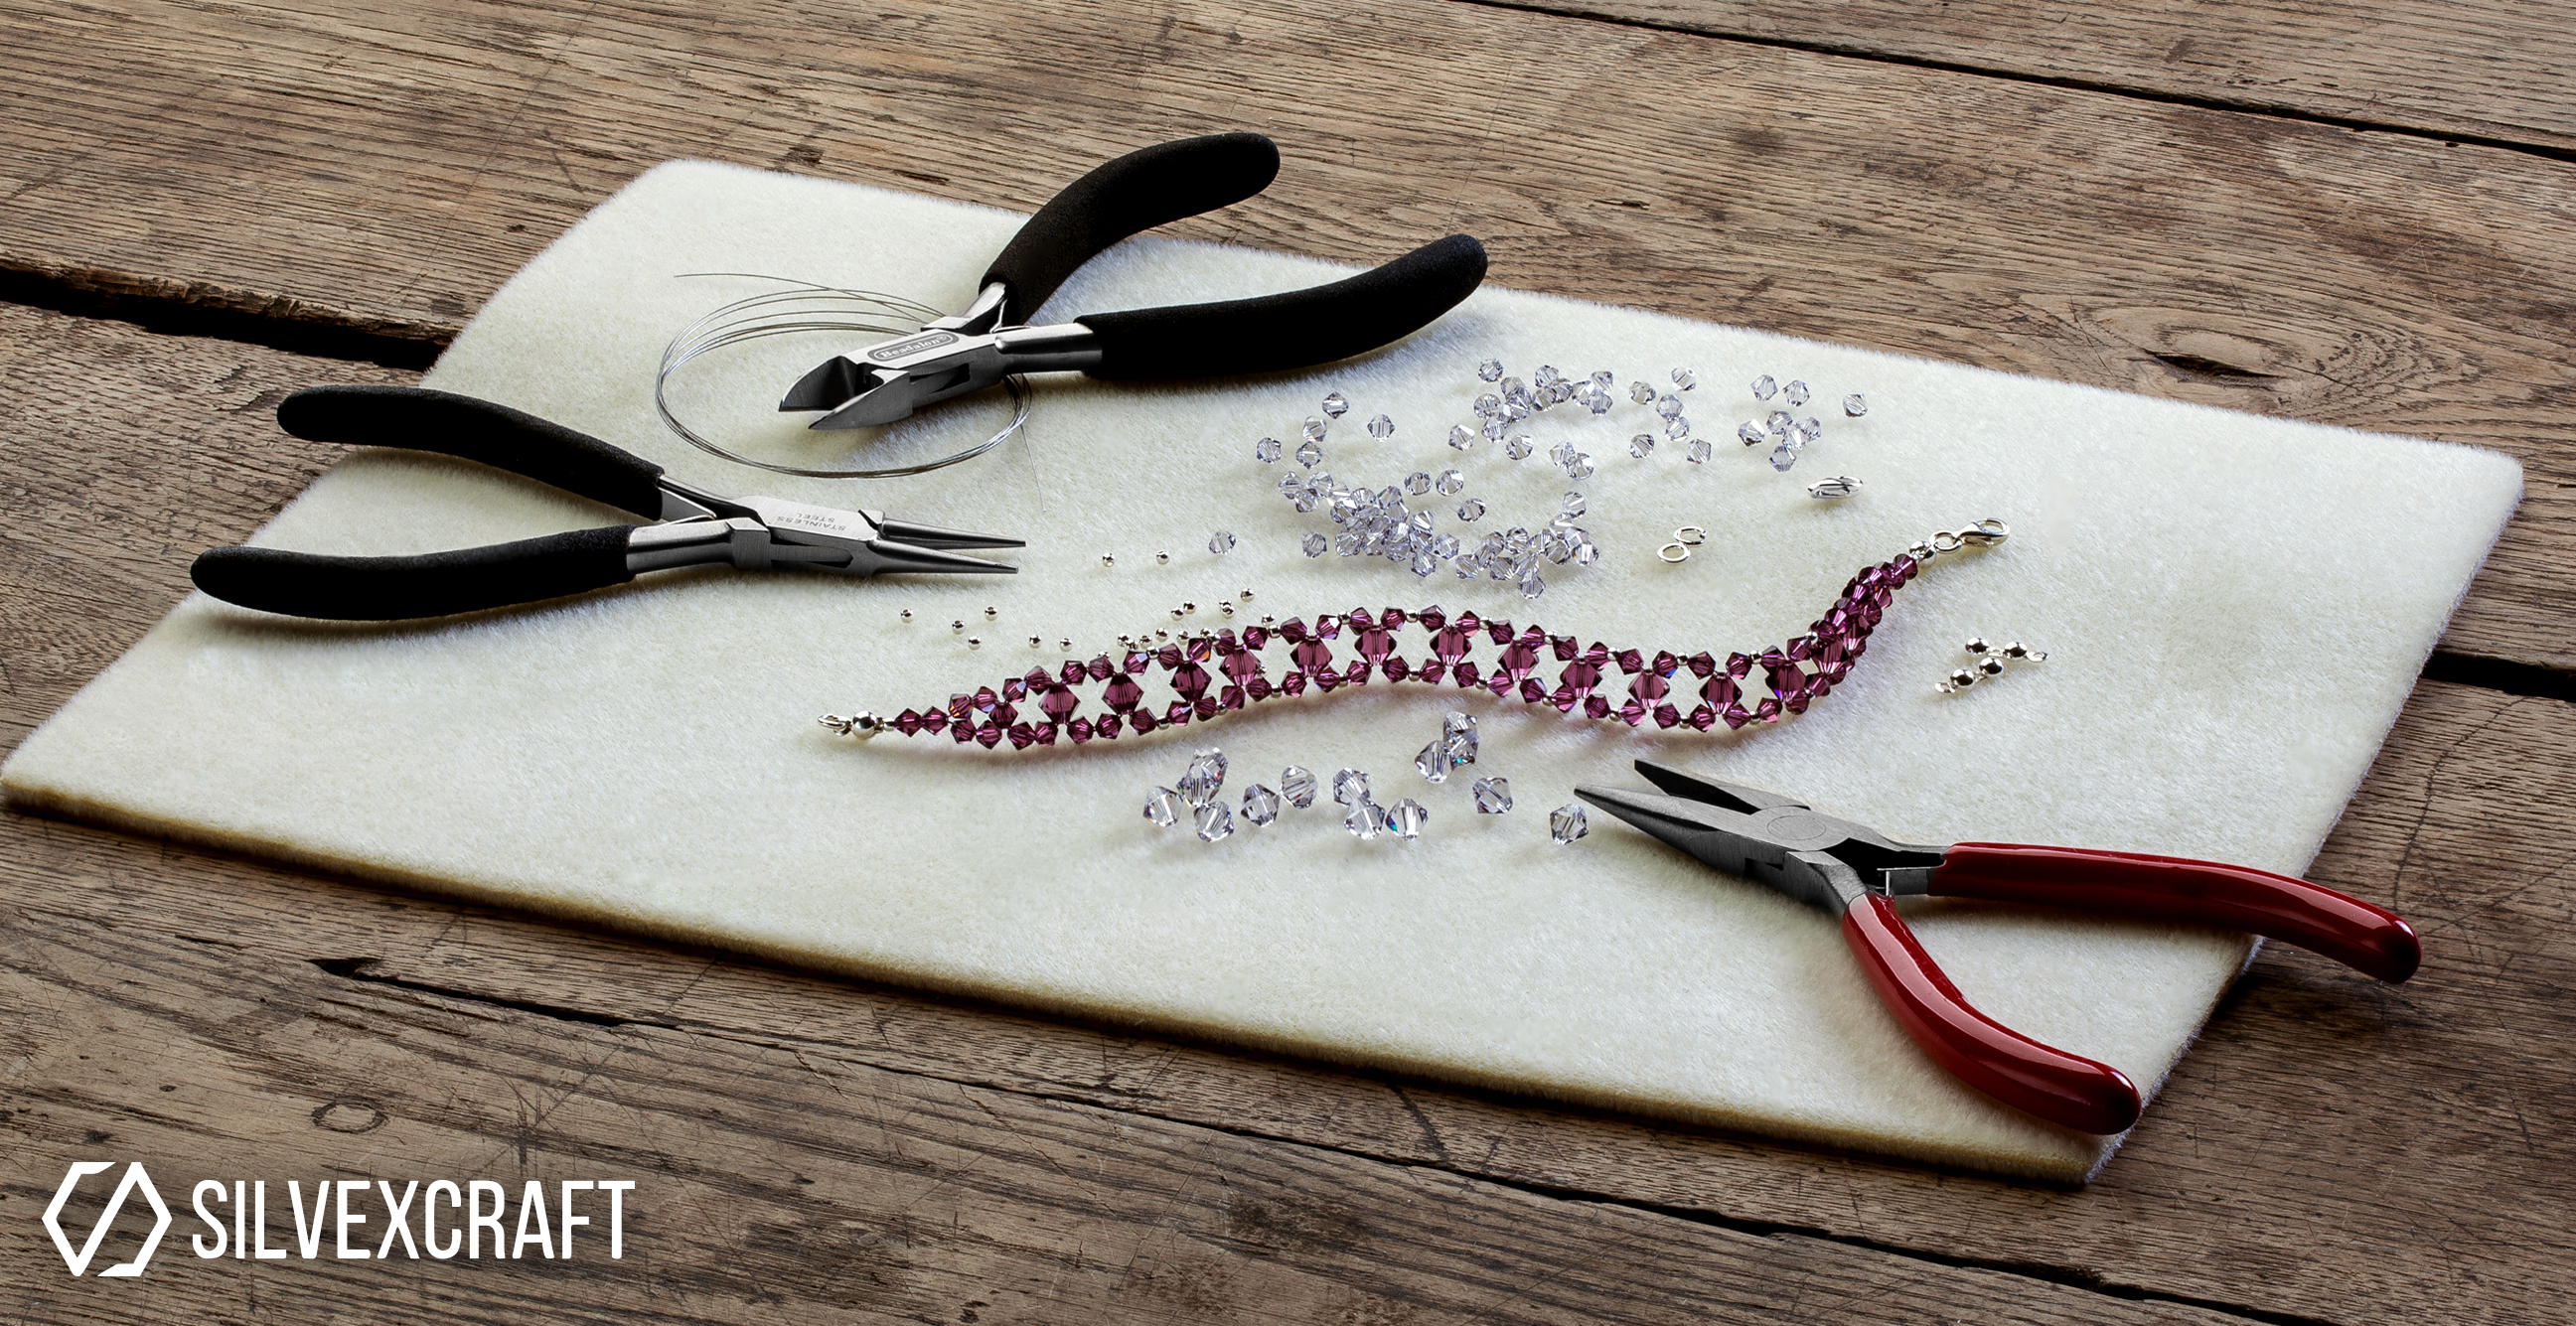 SILVEXCRAFT SILVER AND GOLD JEWELLERY FINDINGS